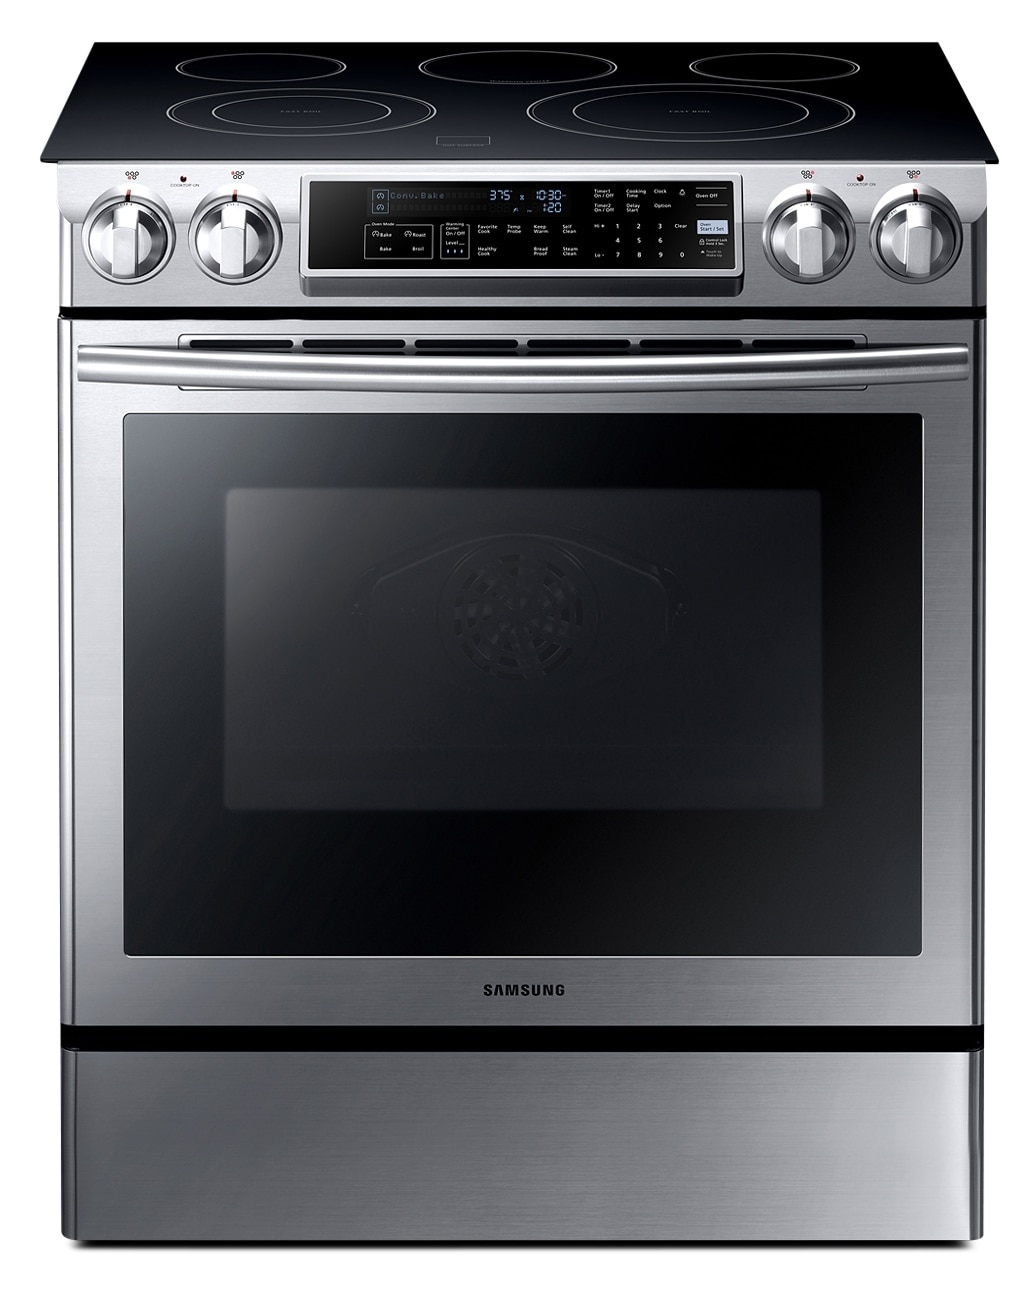 Cooking Products - Samsung Stainless Steel Electric Slide-In Range (5.8 Cu. Ft.) - NE58F9500SS